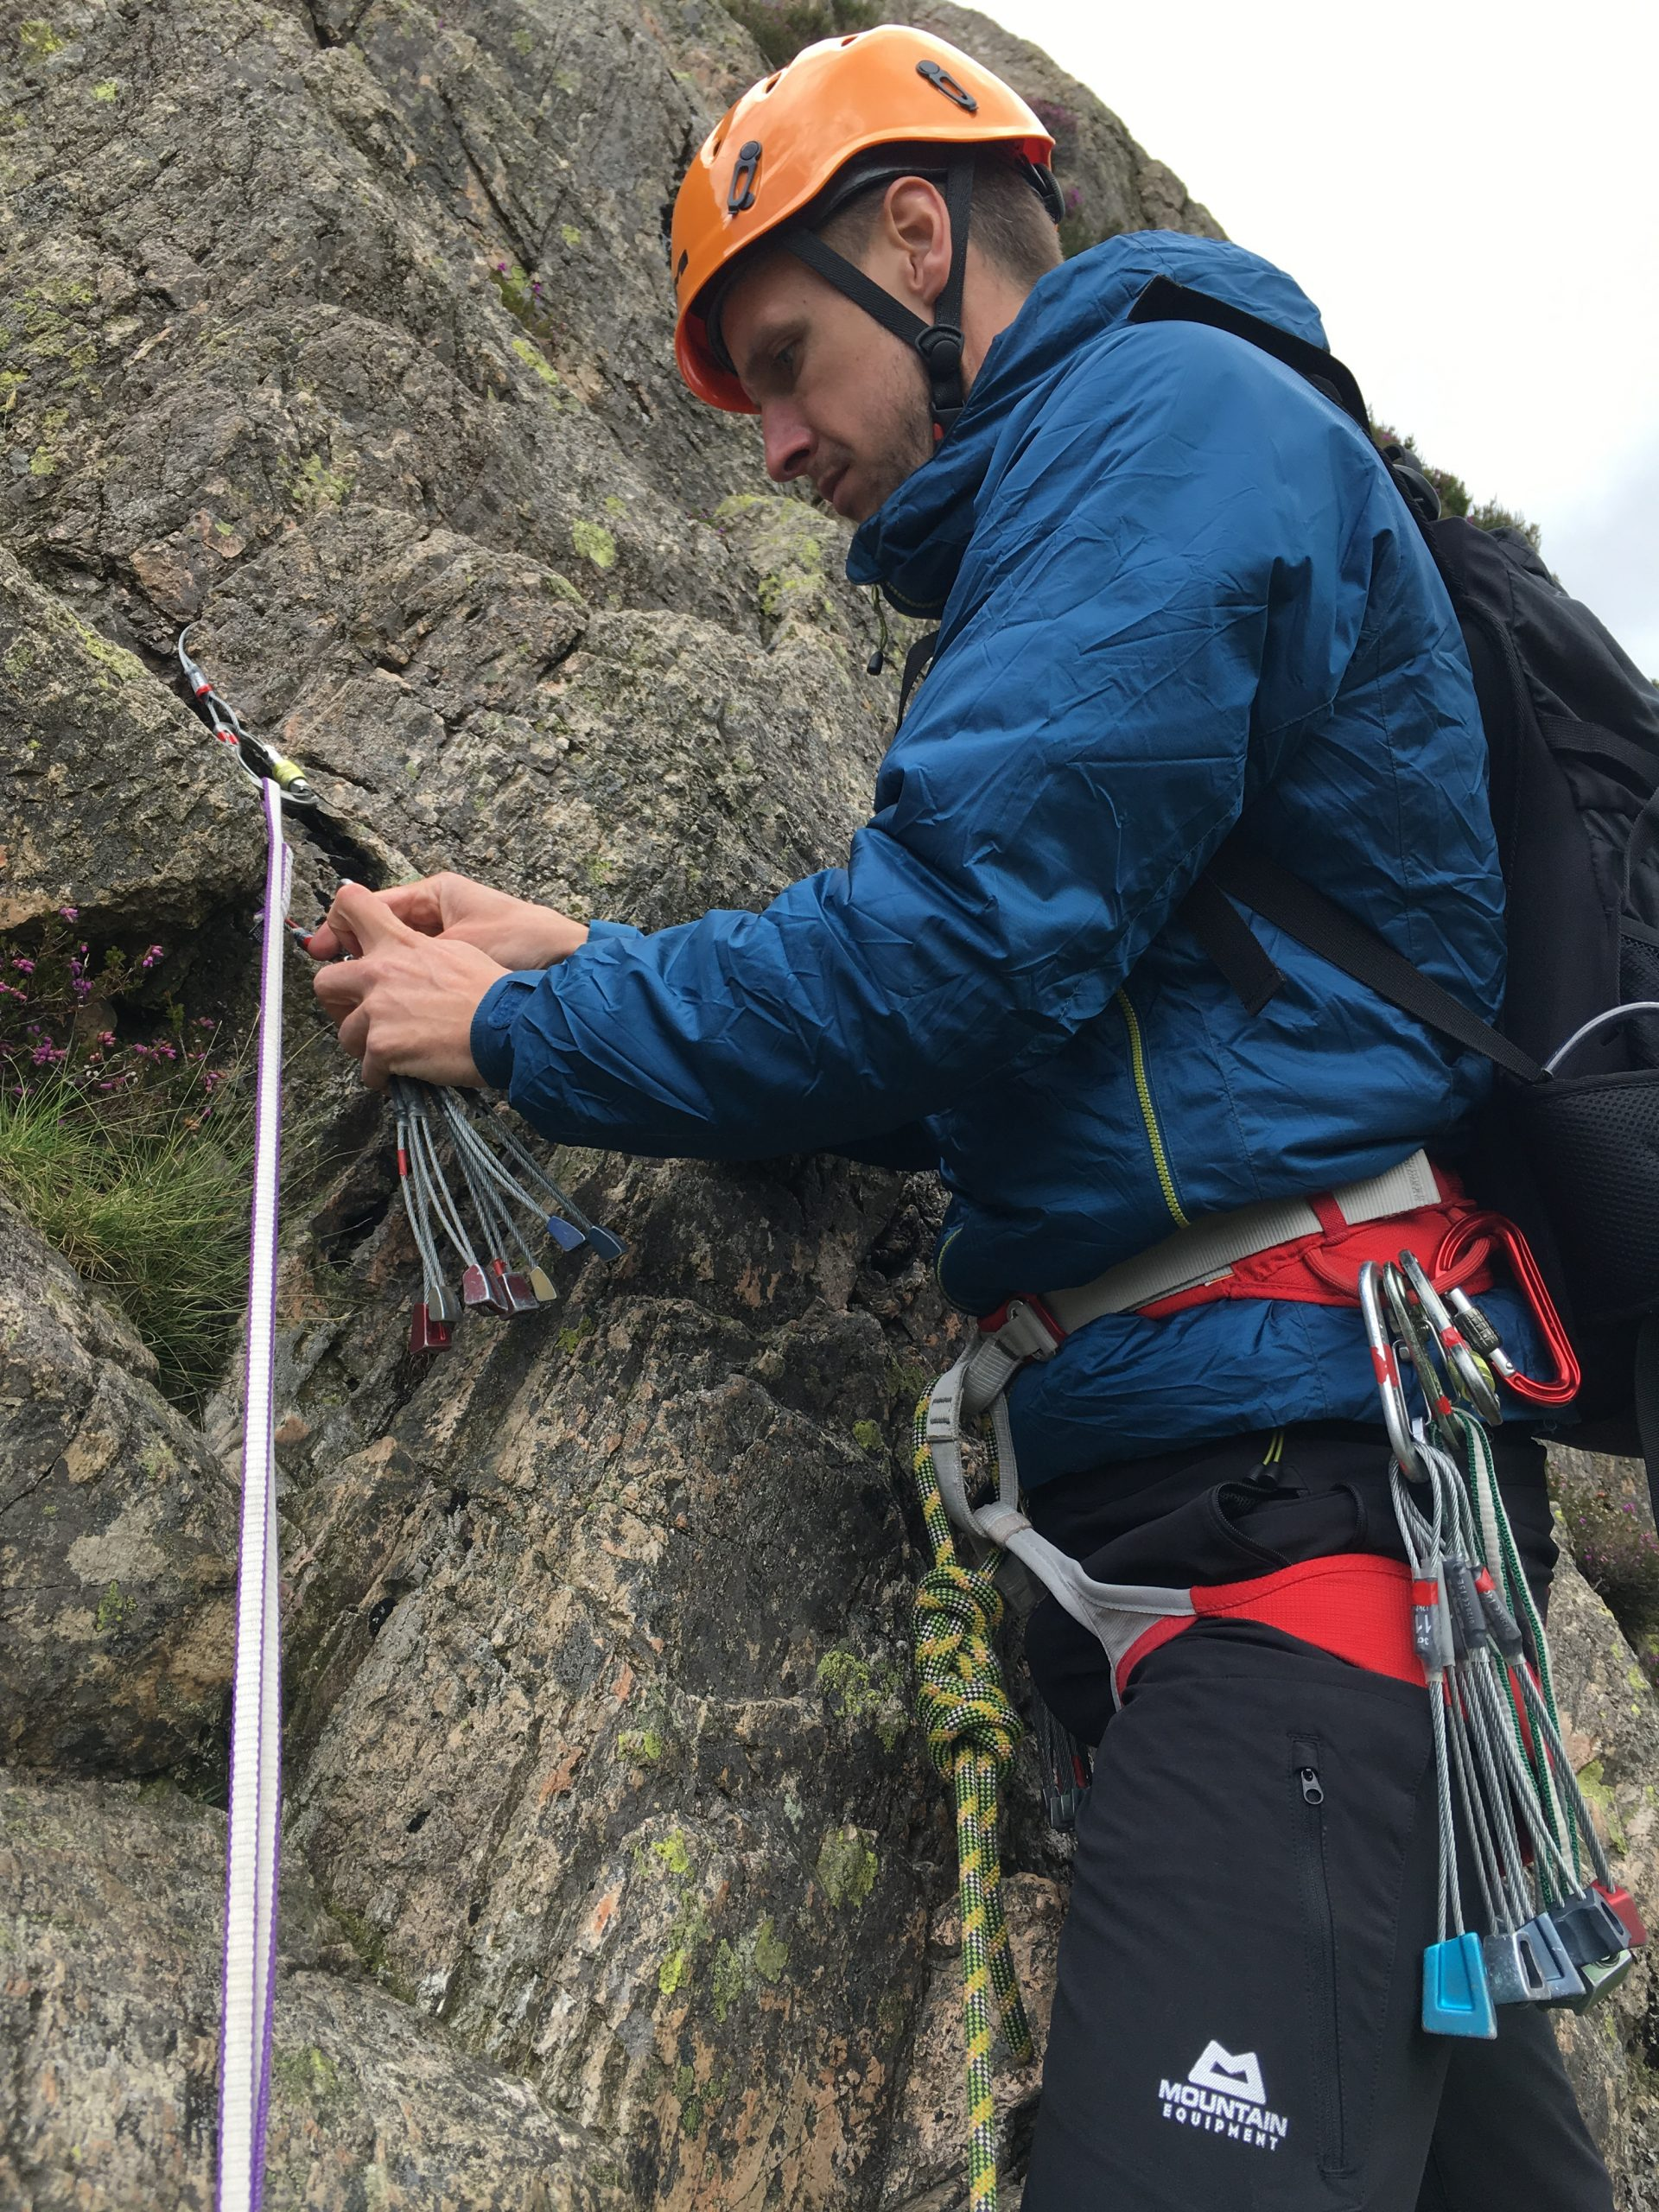 A climber selects the correct wire as protection during a learn to lead rock climbing course in the Lake District